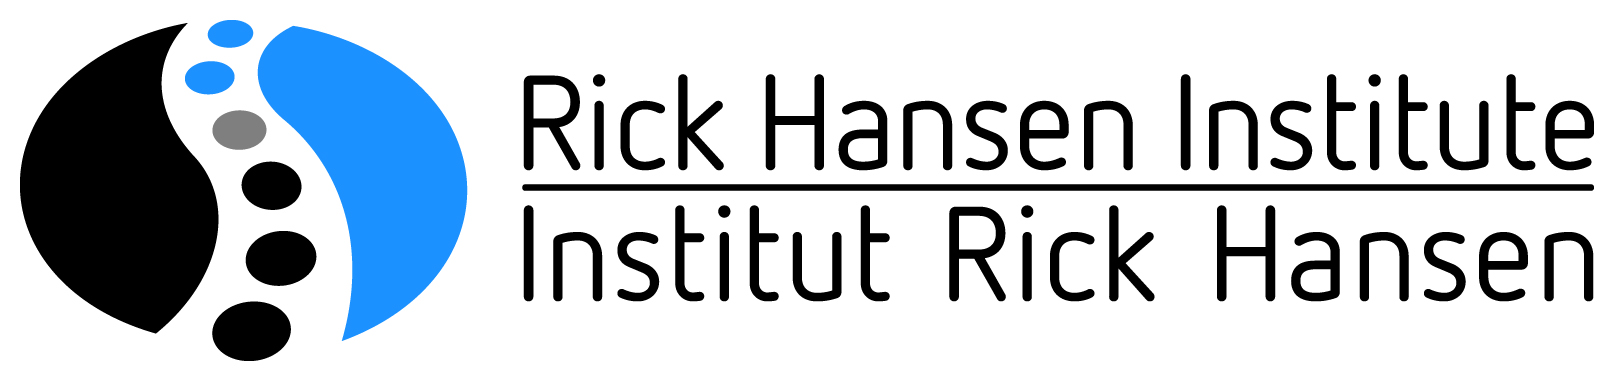 Image result for rick hansen institute